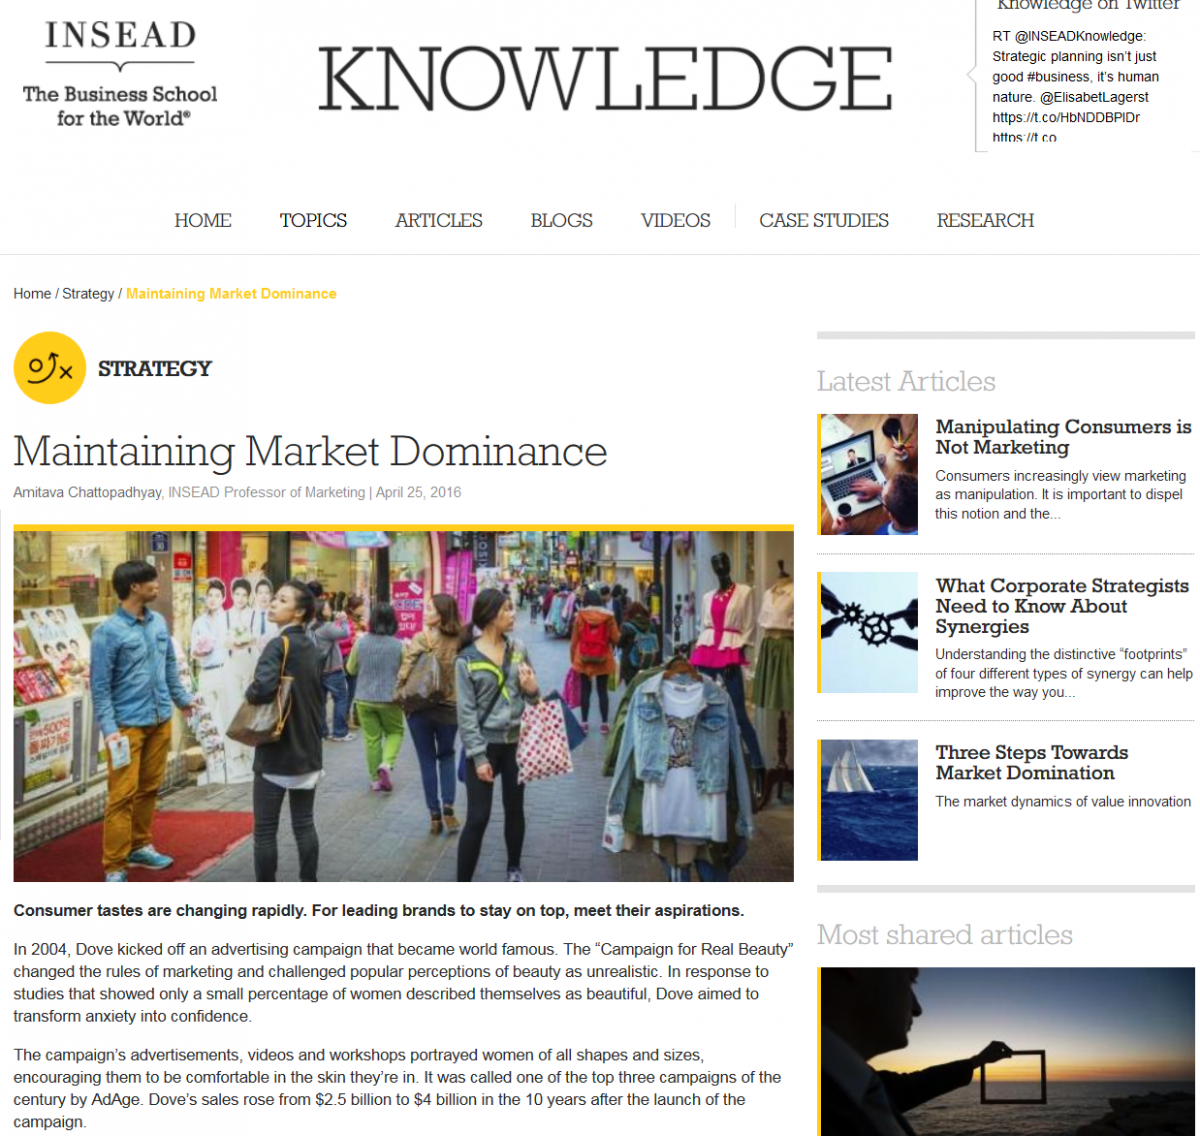 Coverage at INSEAD Knowledge